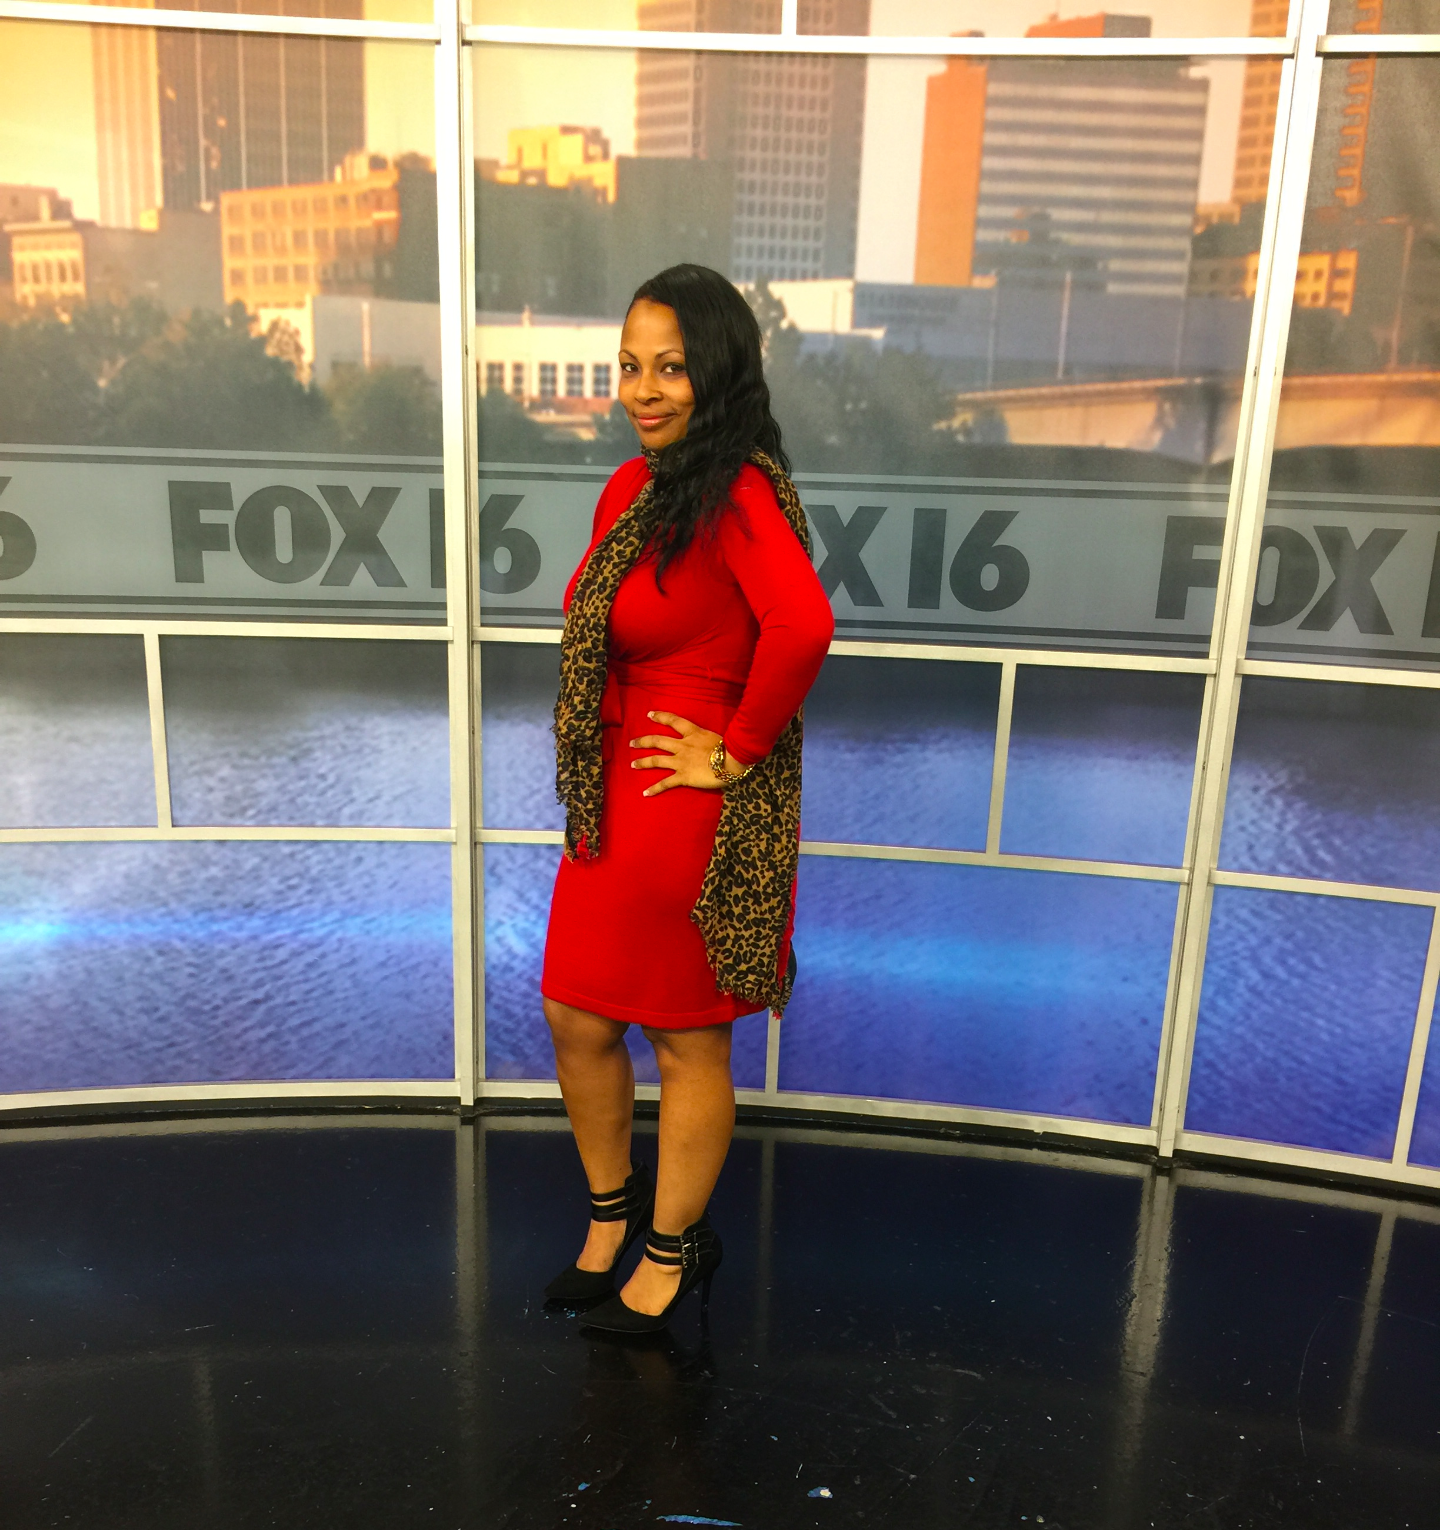 FOX16 NEWS - GOOD DAY ARKANSAS